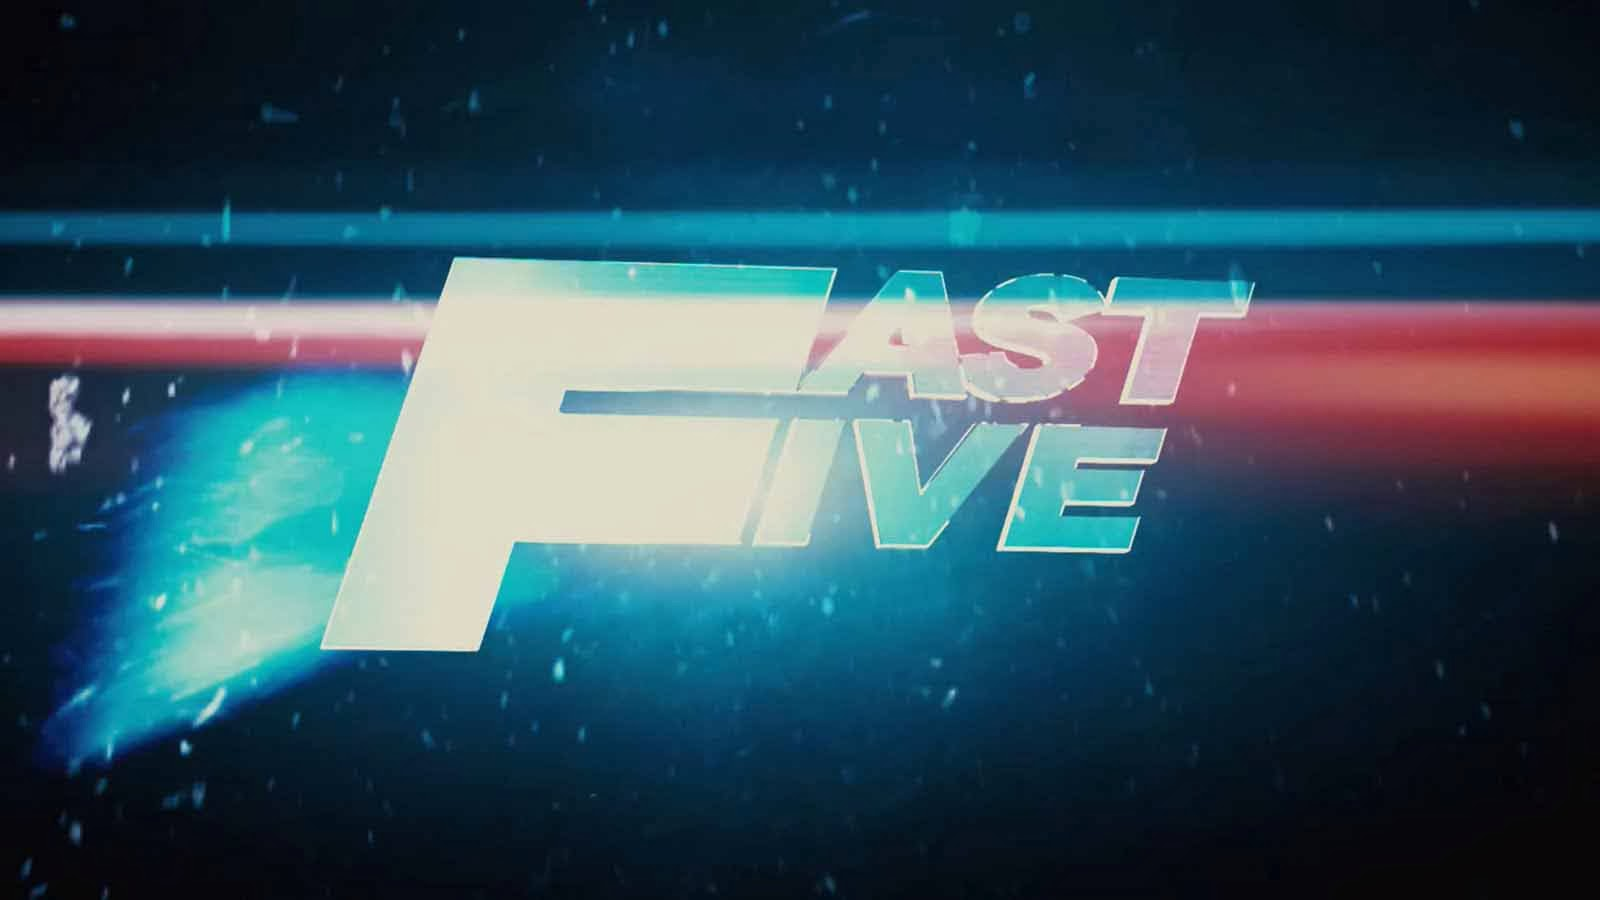 HD Wallpapers Fast Five Wallpapers 1600x900